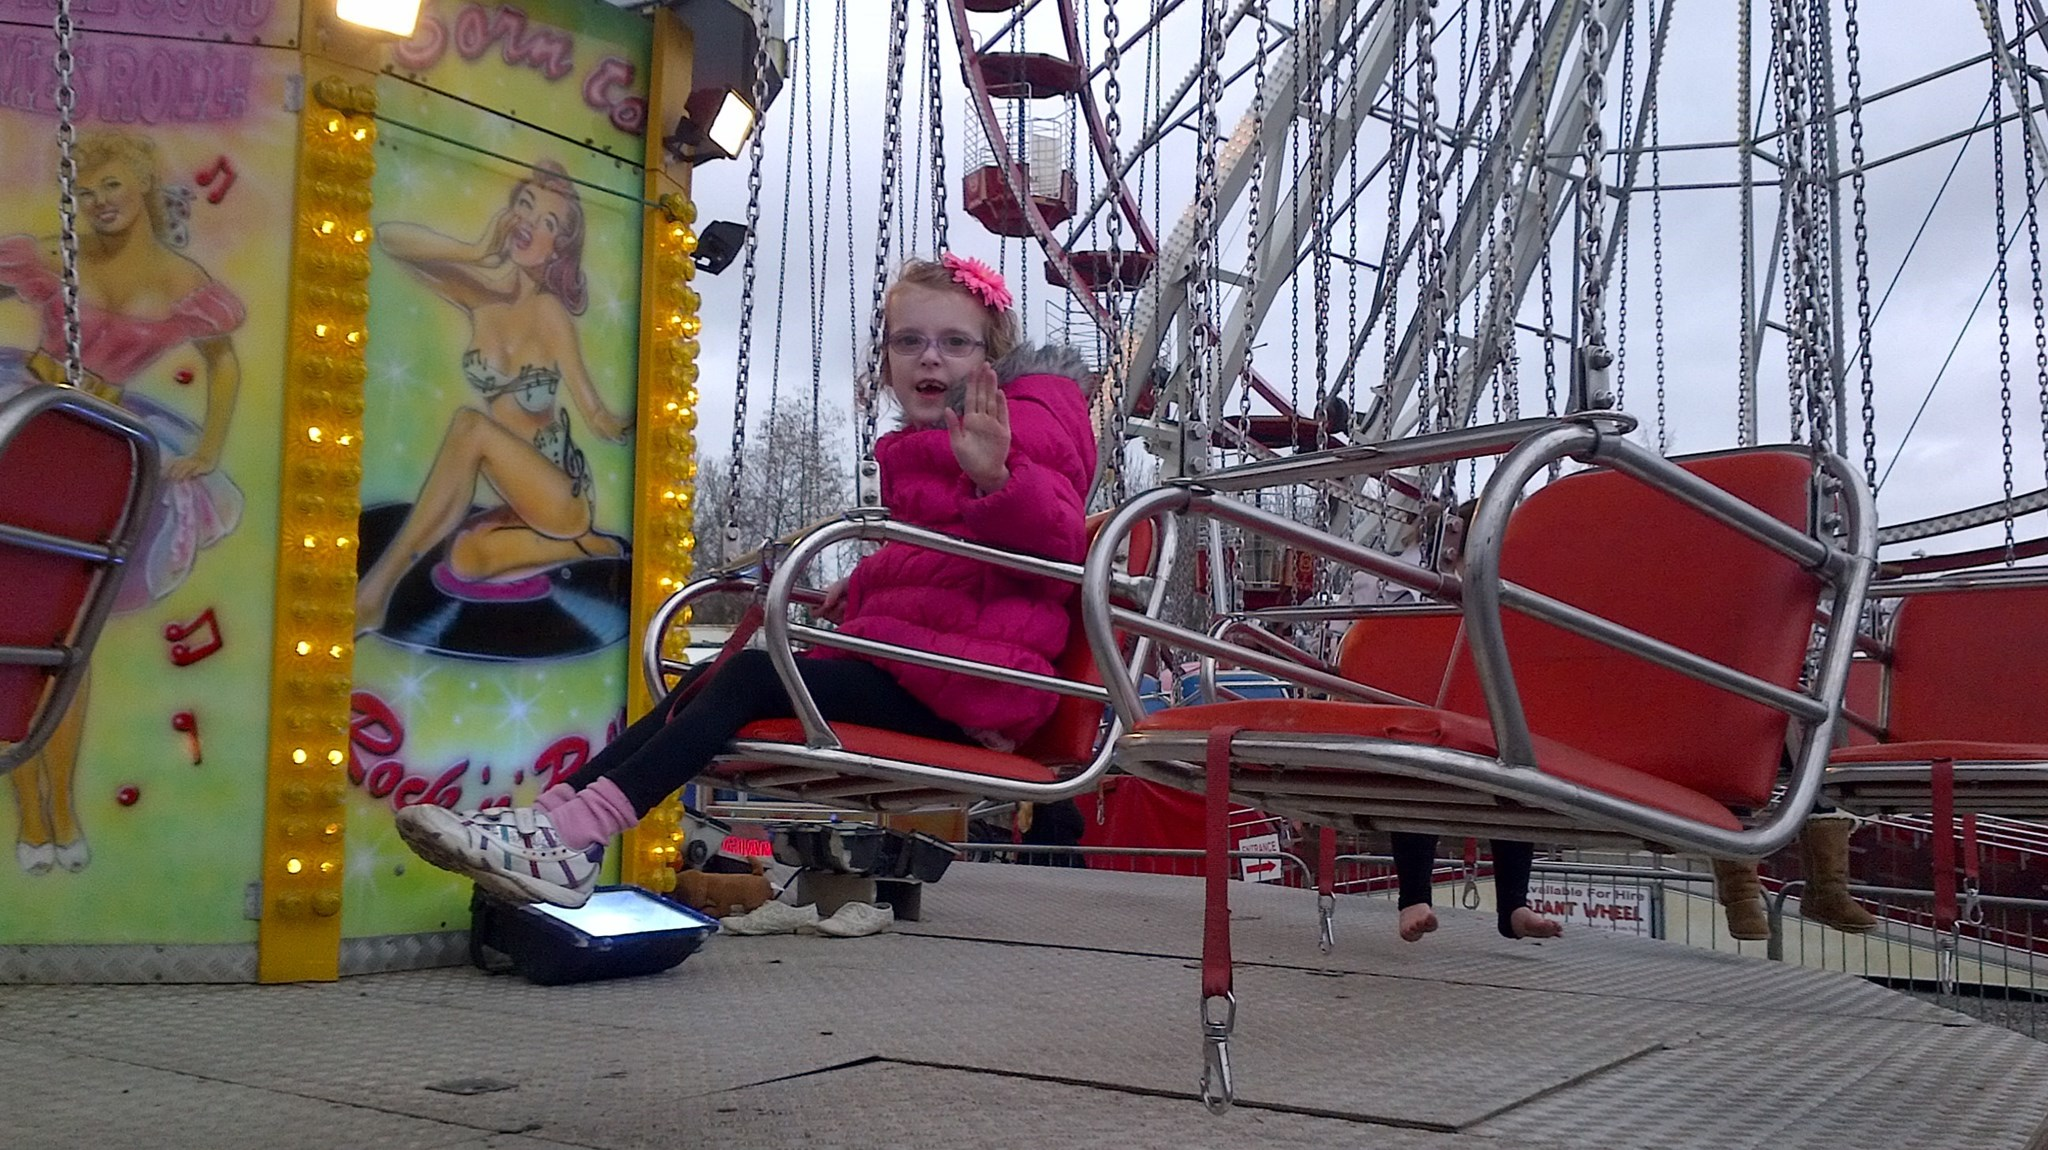 orla loved this swing at the fairground and went on it over and over